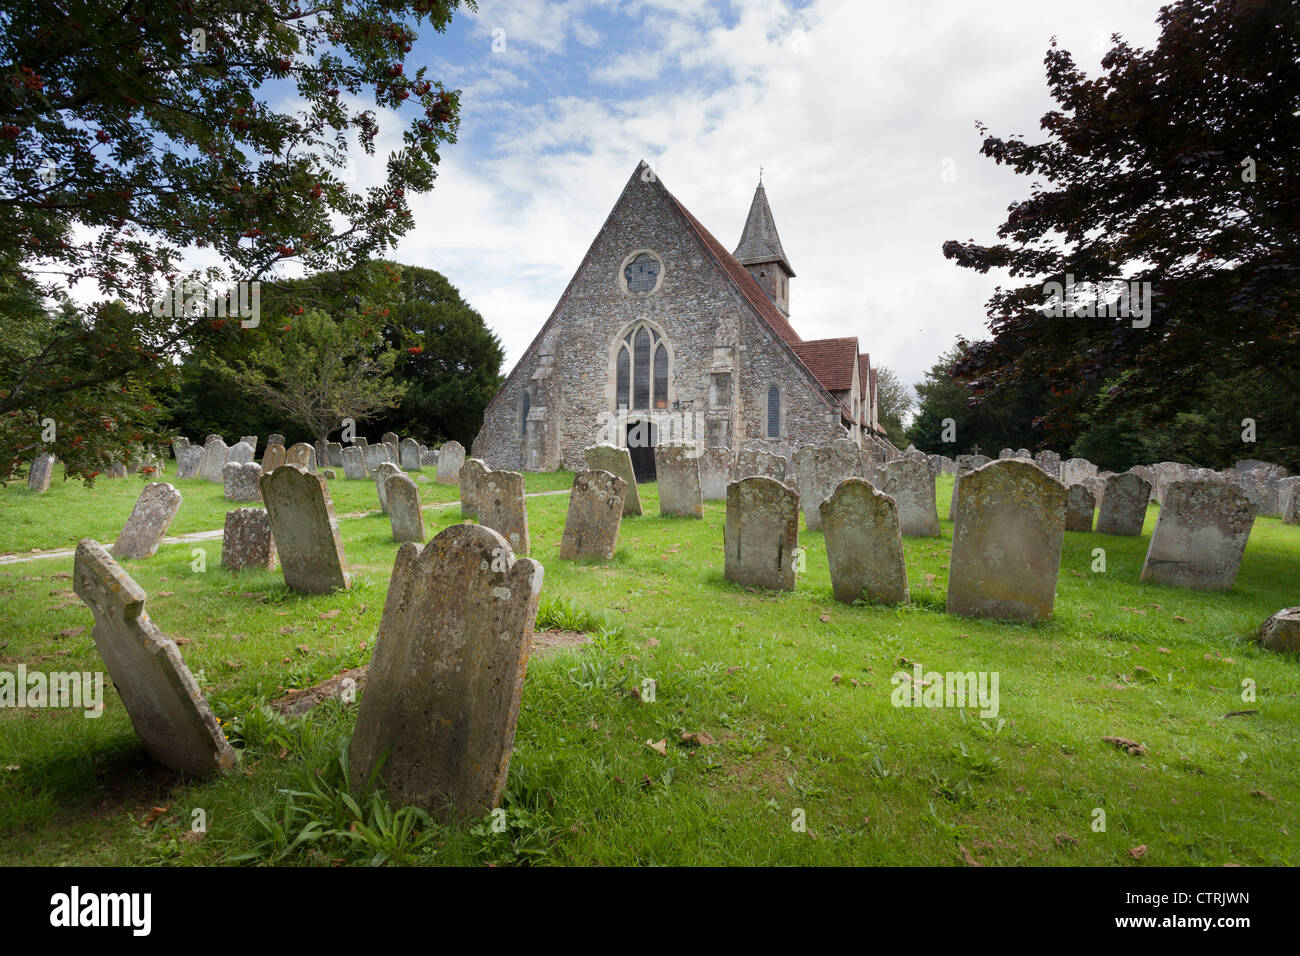 The 12C Church St Thomas à Becket, Warblington and gravestones in the churchyard. - Stock Image